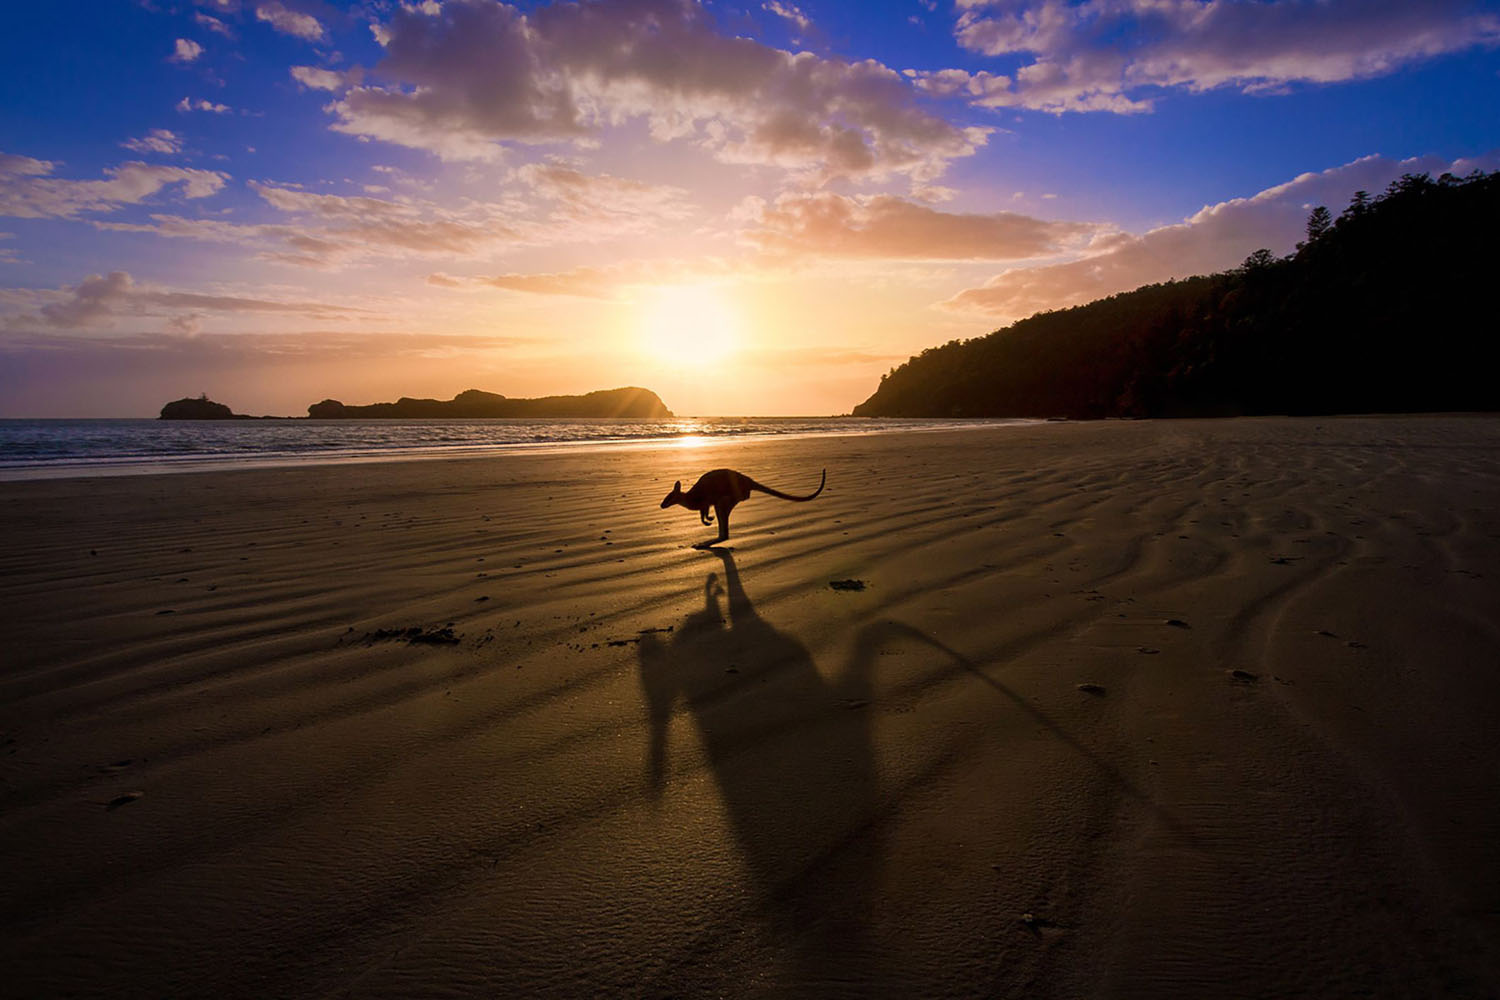 A kangaroo jumps in front of a sunrise over the beach